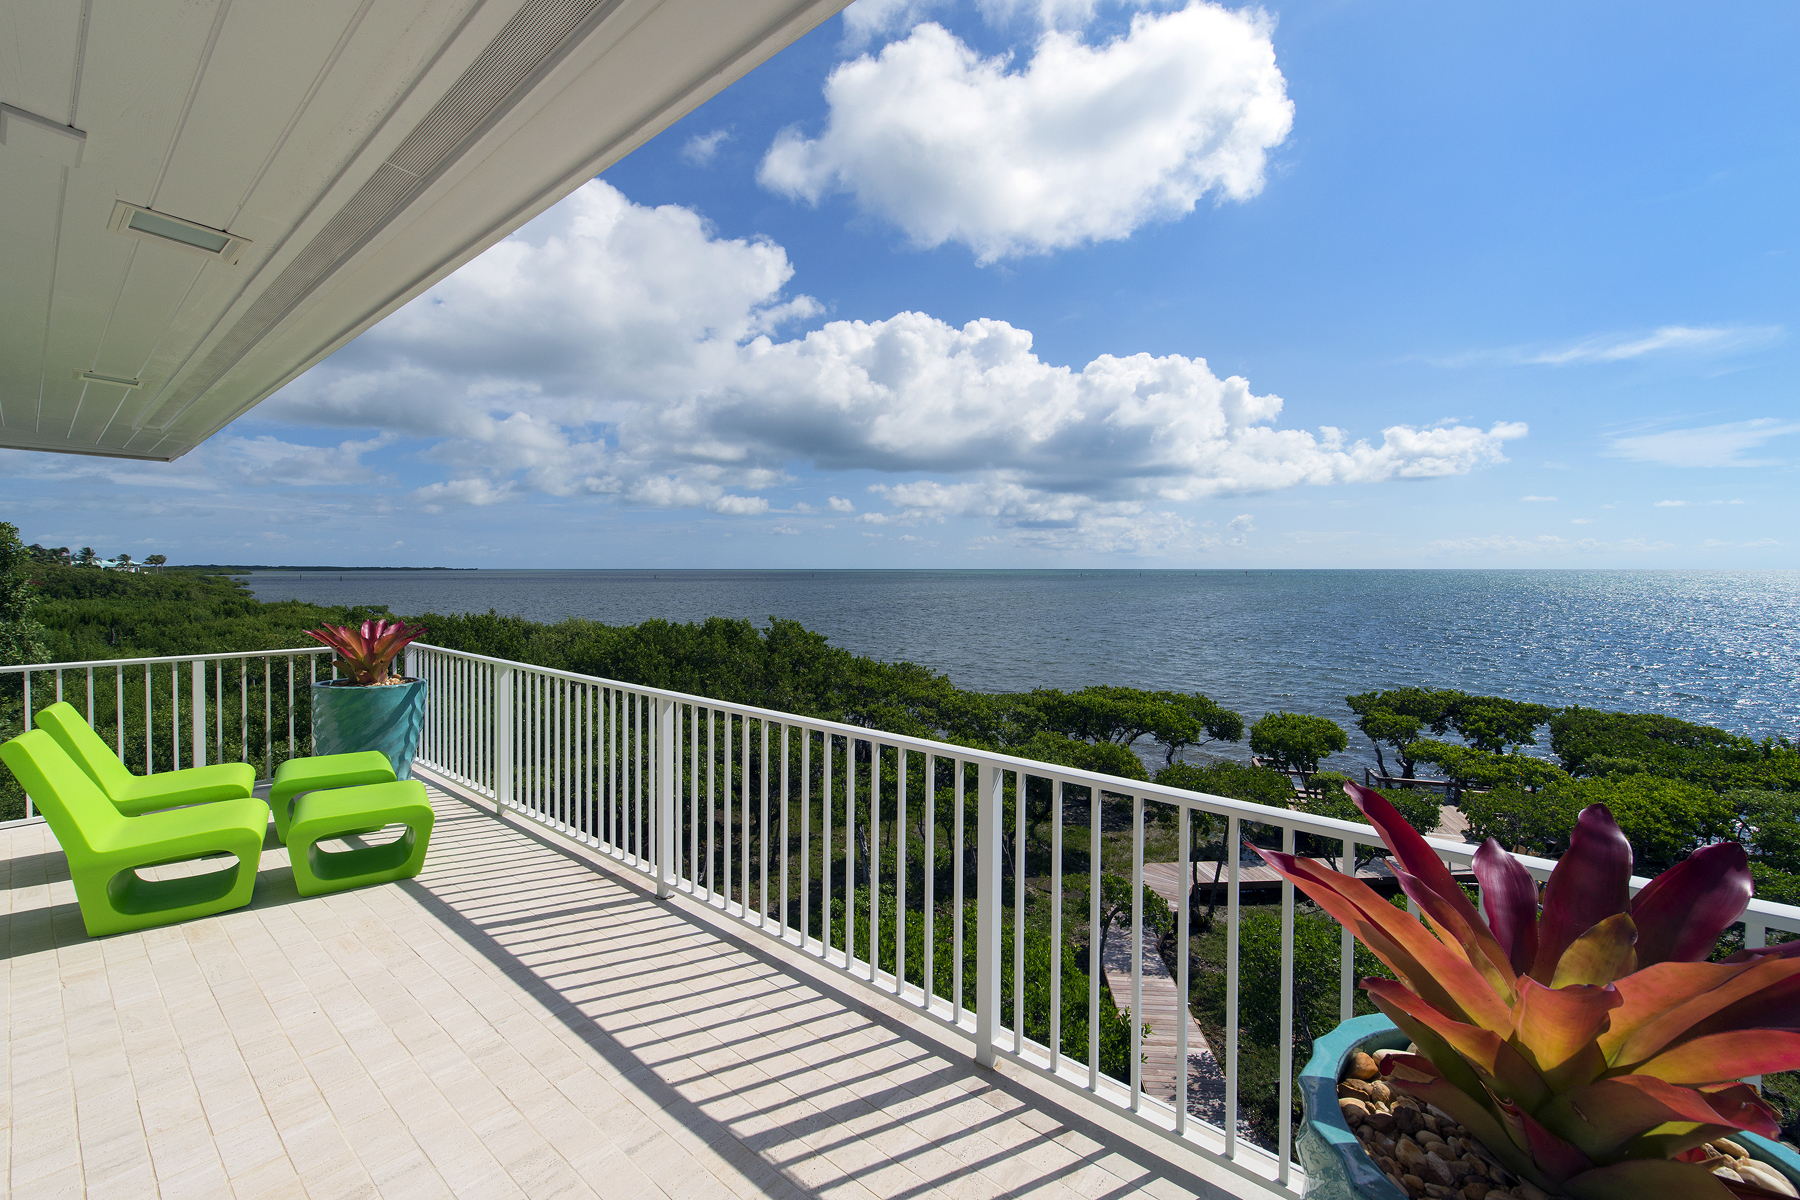 Частный односемейный дом для того Продажа на Captivating Ocean Front Views at Ocean Reef 15 Sunrise Cay Drive Ocean Reef Community, Key Largo, Флорида, 33037 Соединенные Штаты